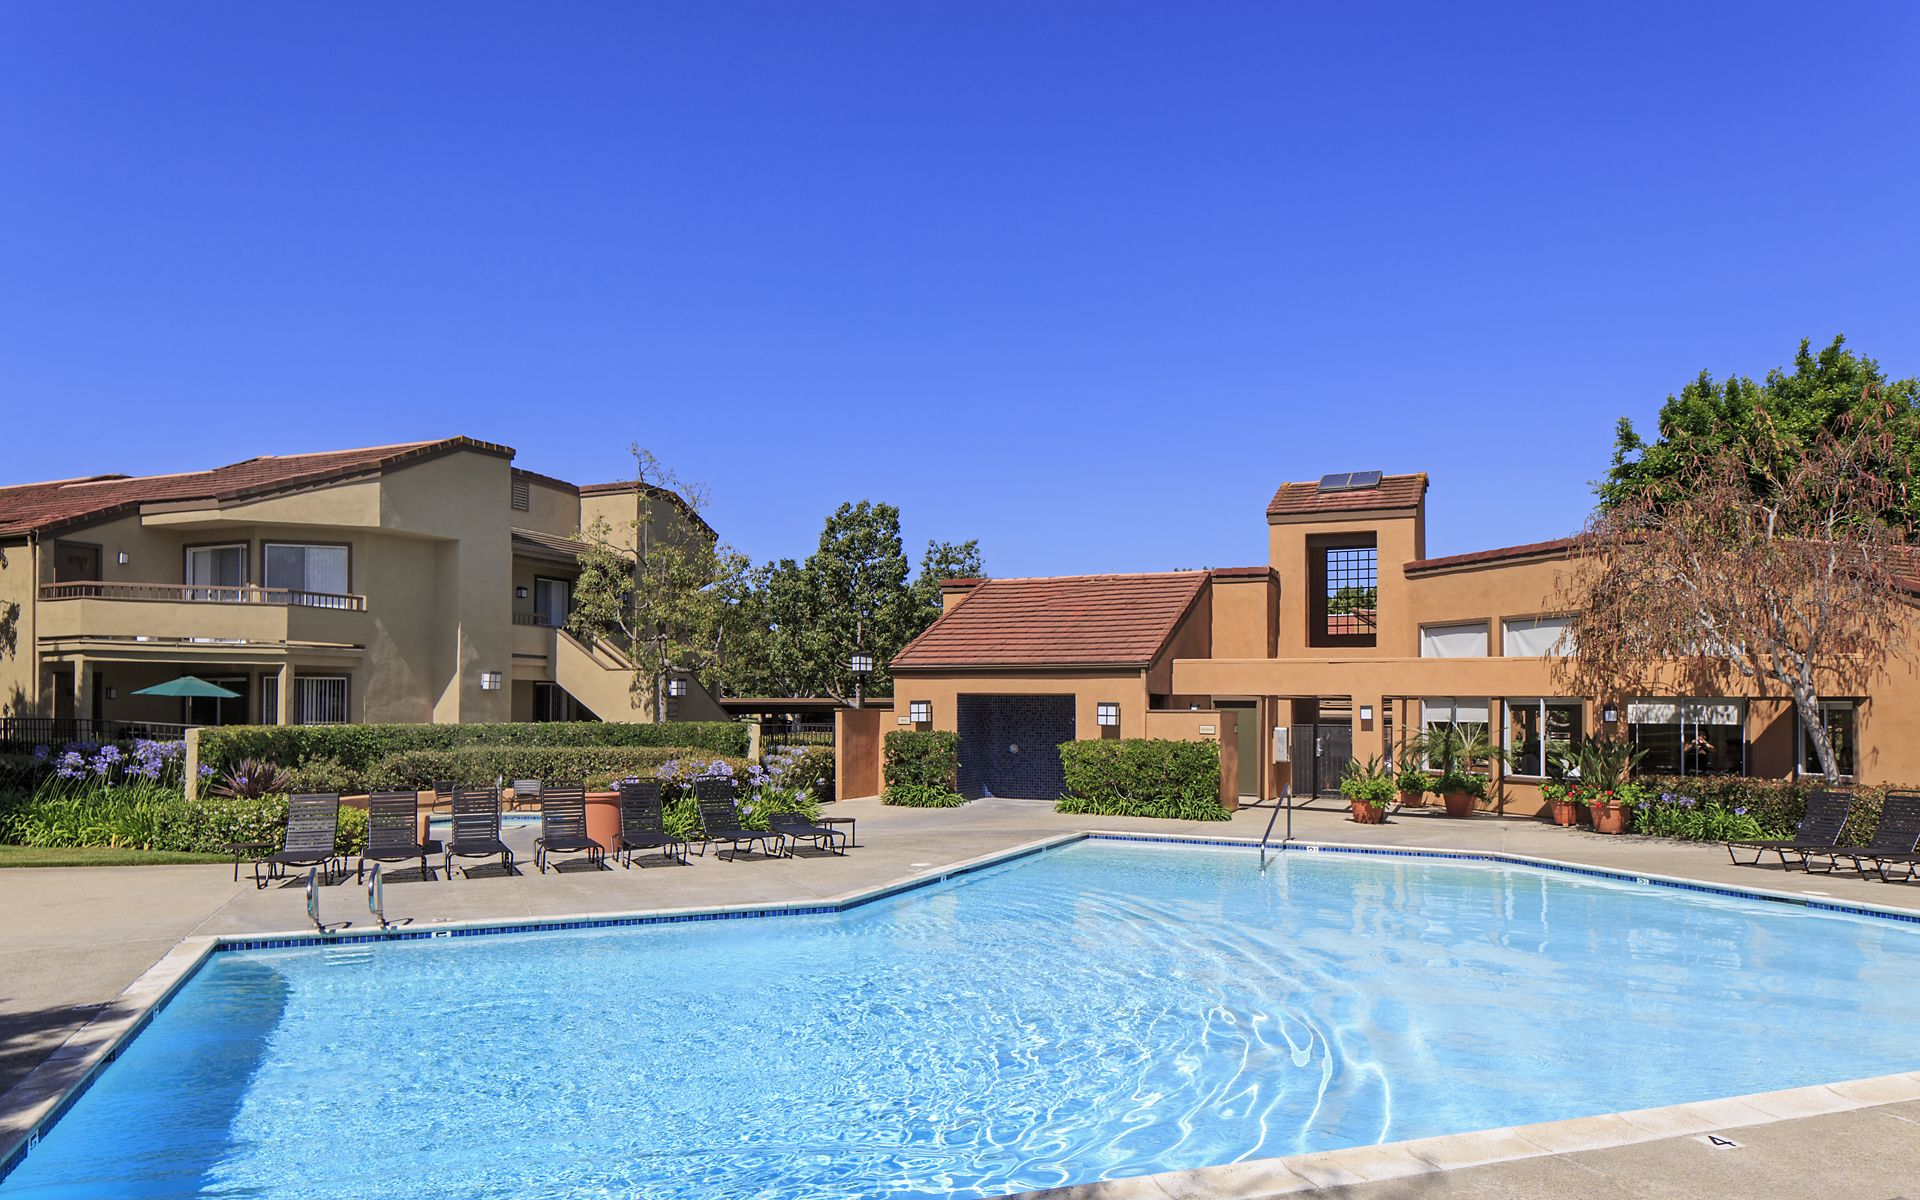 View of pool area at Harvard Court Apartment Homes at University Town Center in Irvine, CA.